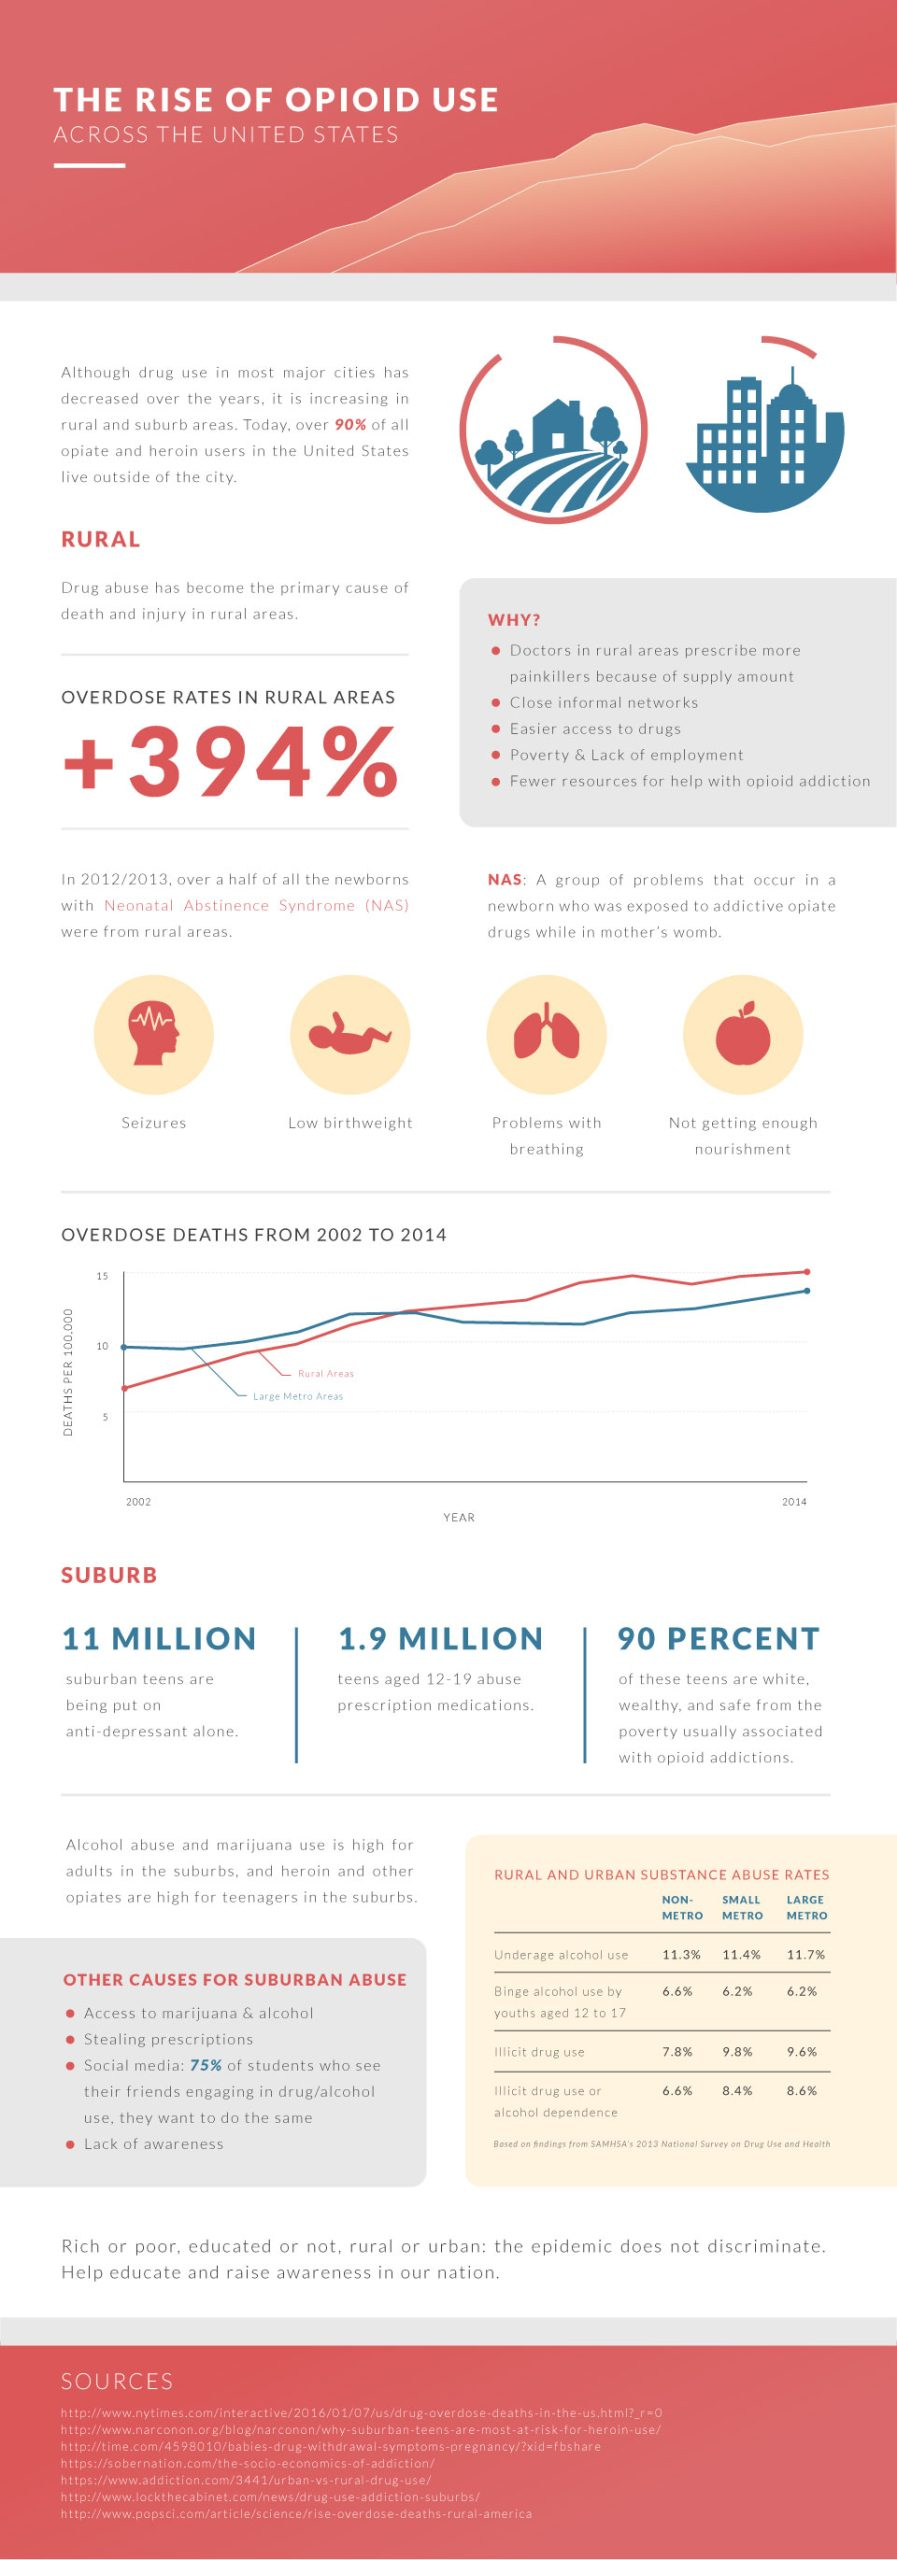 infographic of the rise of the opioid use in the united states. many think that drug are effecting only homeless people on the streets in the middle of big cities. opioid use has increased over the years, specifically in rural and suburban areas. over 90% of al opiate and heroin users in the united states live outside of the city.